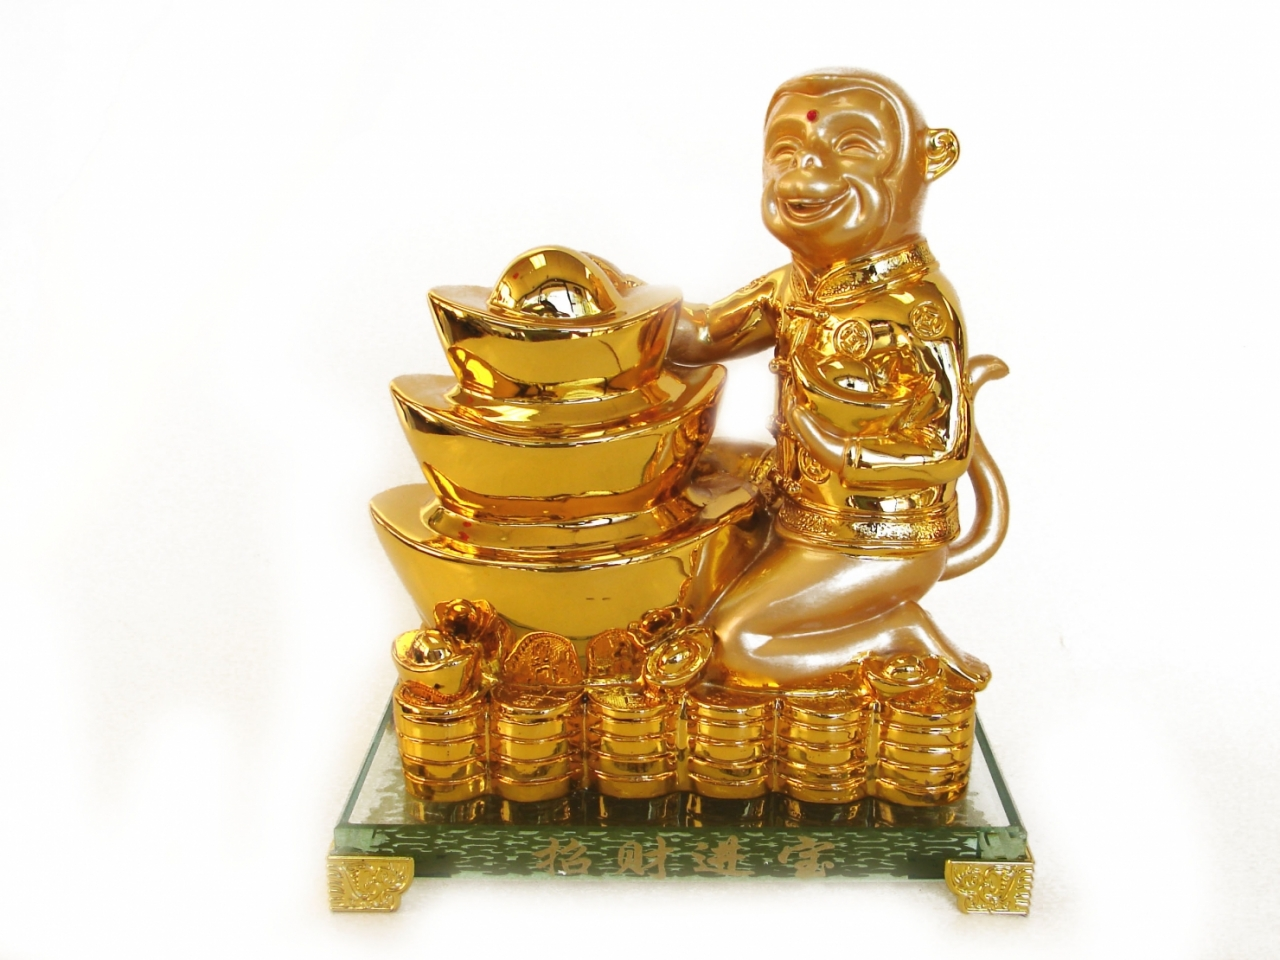 Golden Monkey Statue With Feng Shui Ingot For Year Of The